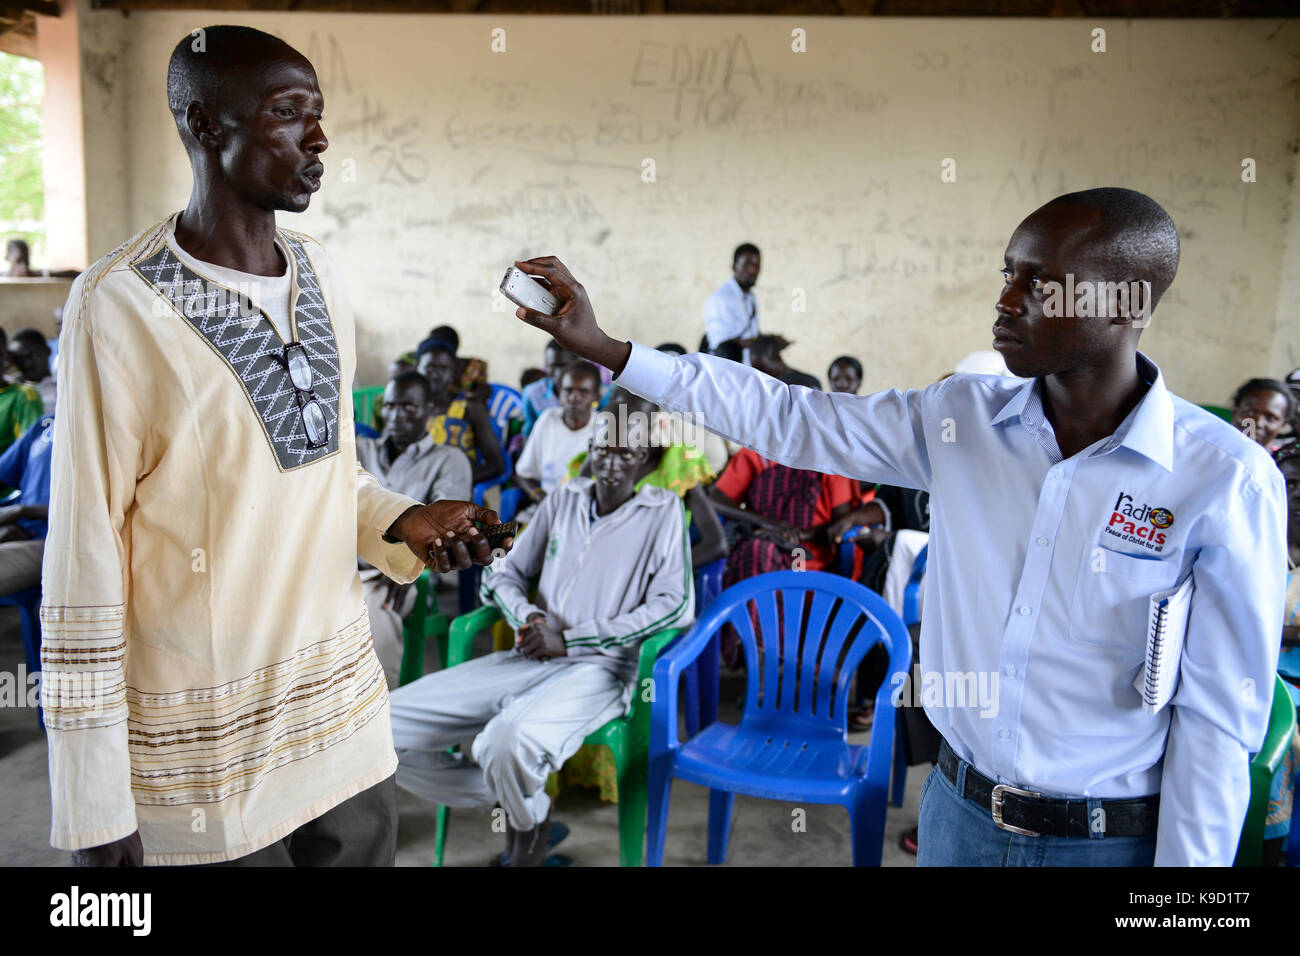 UGANDA, Arua, Radio Pacis reporter, Rhino Camp Refugee Settlement with Nuer and Dinka refugees from South Sudan - Stock Image